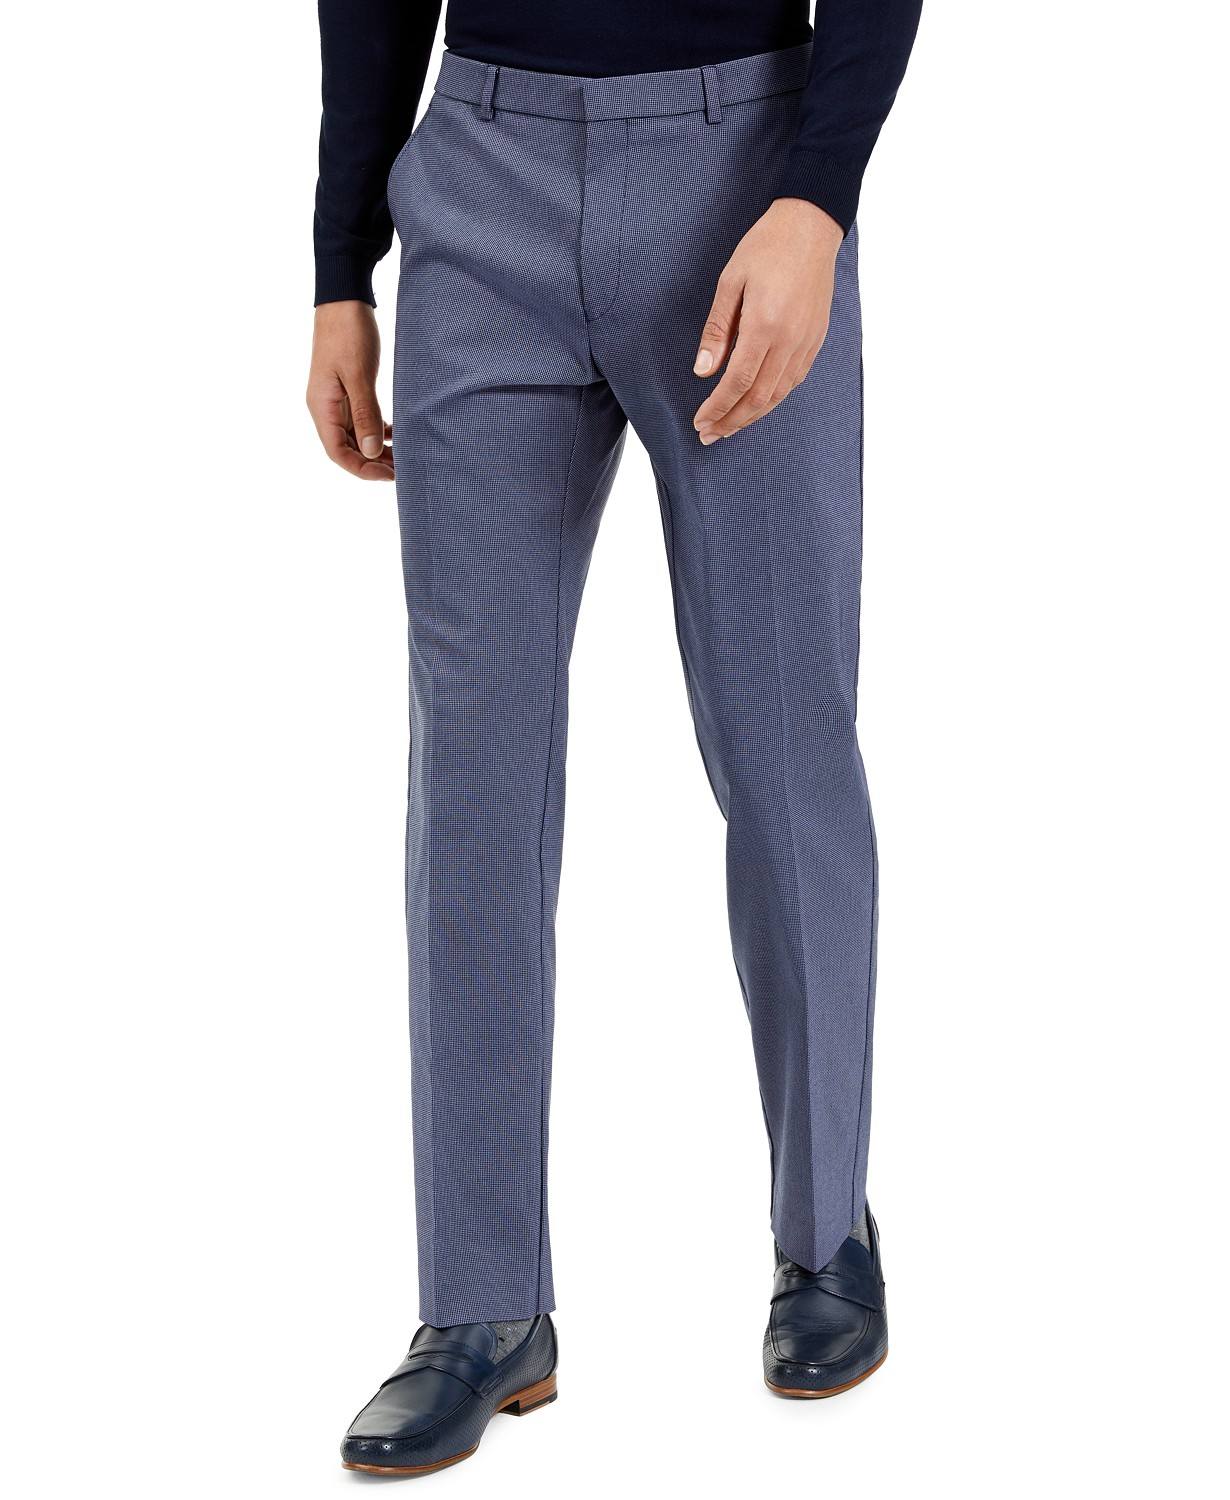 Tommy Hilfiger Men's Modern-Fit Stretch Patterned Performance Pants